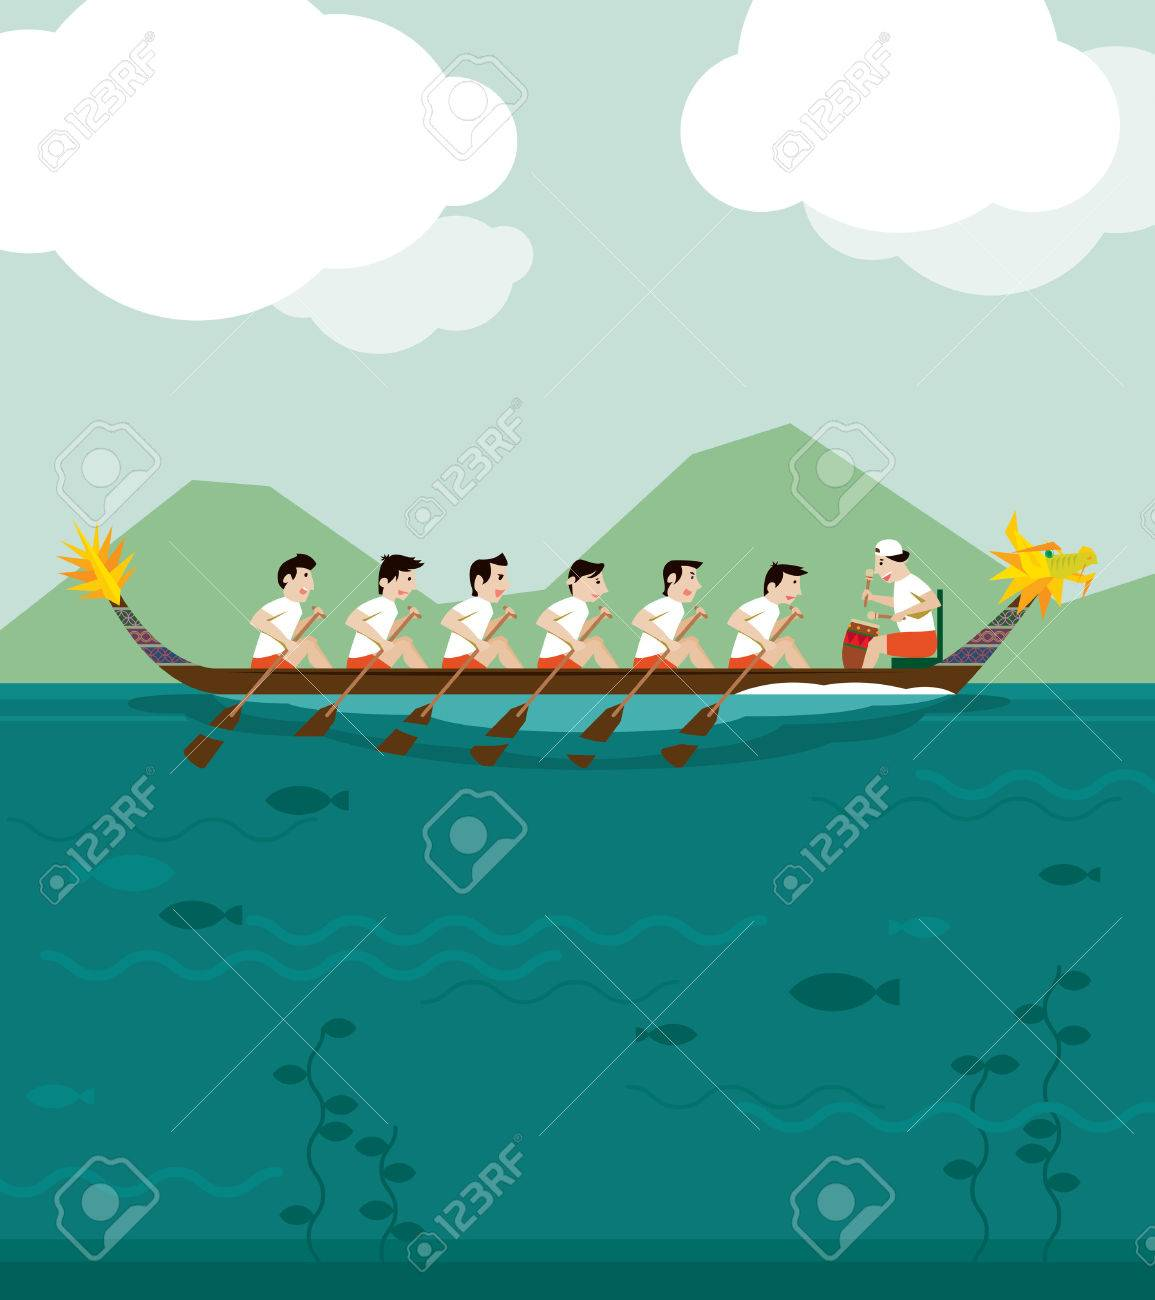 Dragon Boat Racing Illustration Background Stock Vector